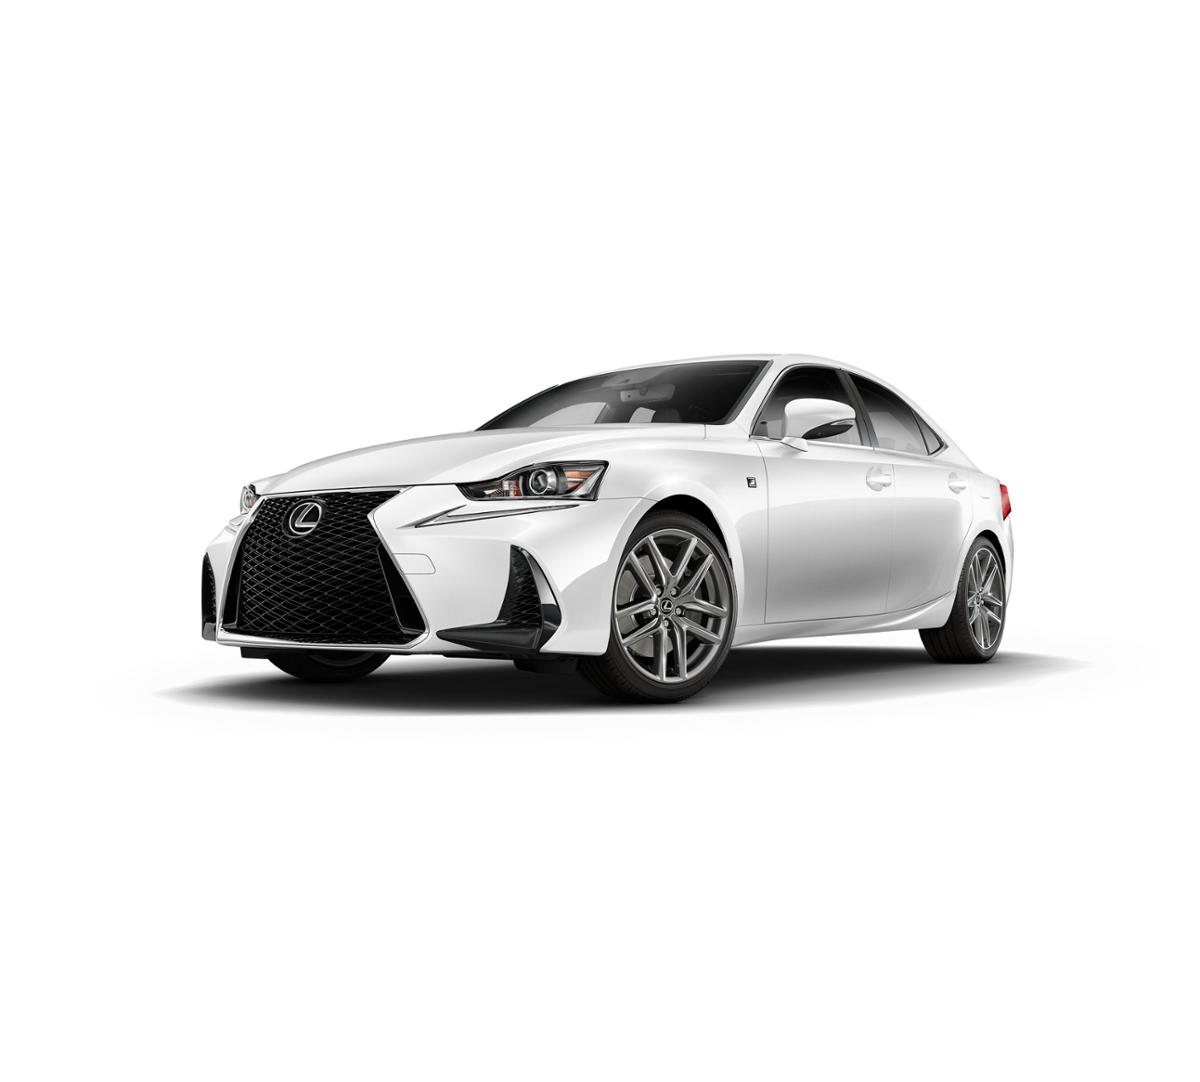 2018 Lexus IS 350 Vehicle Photo in El Monte, CA 91731